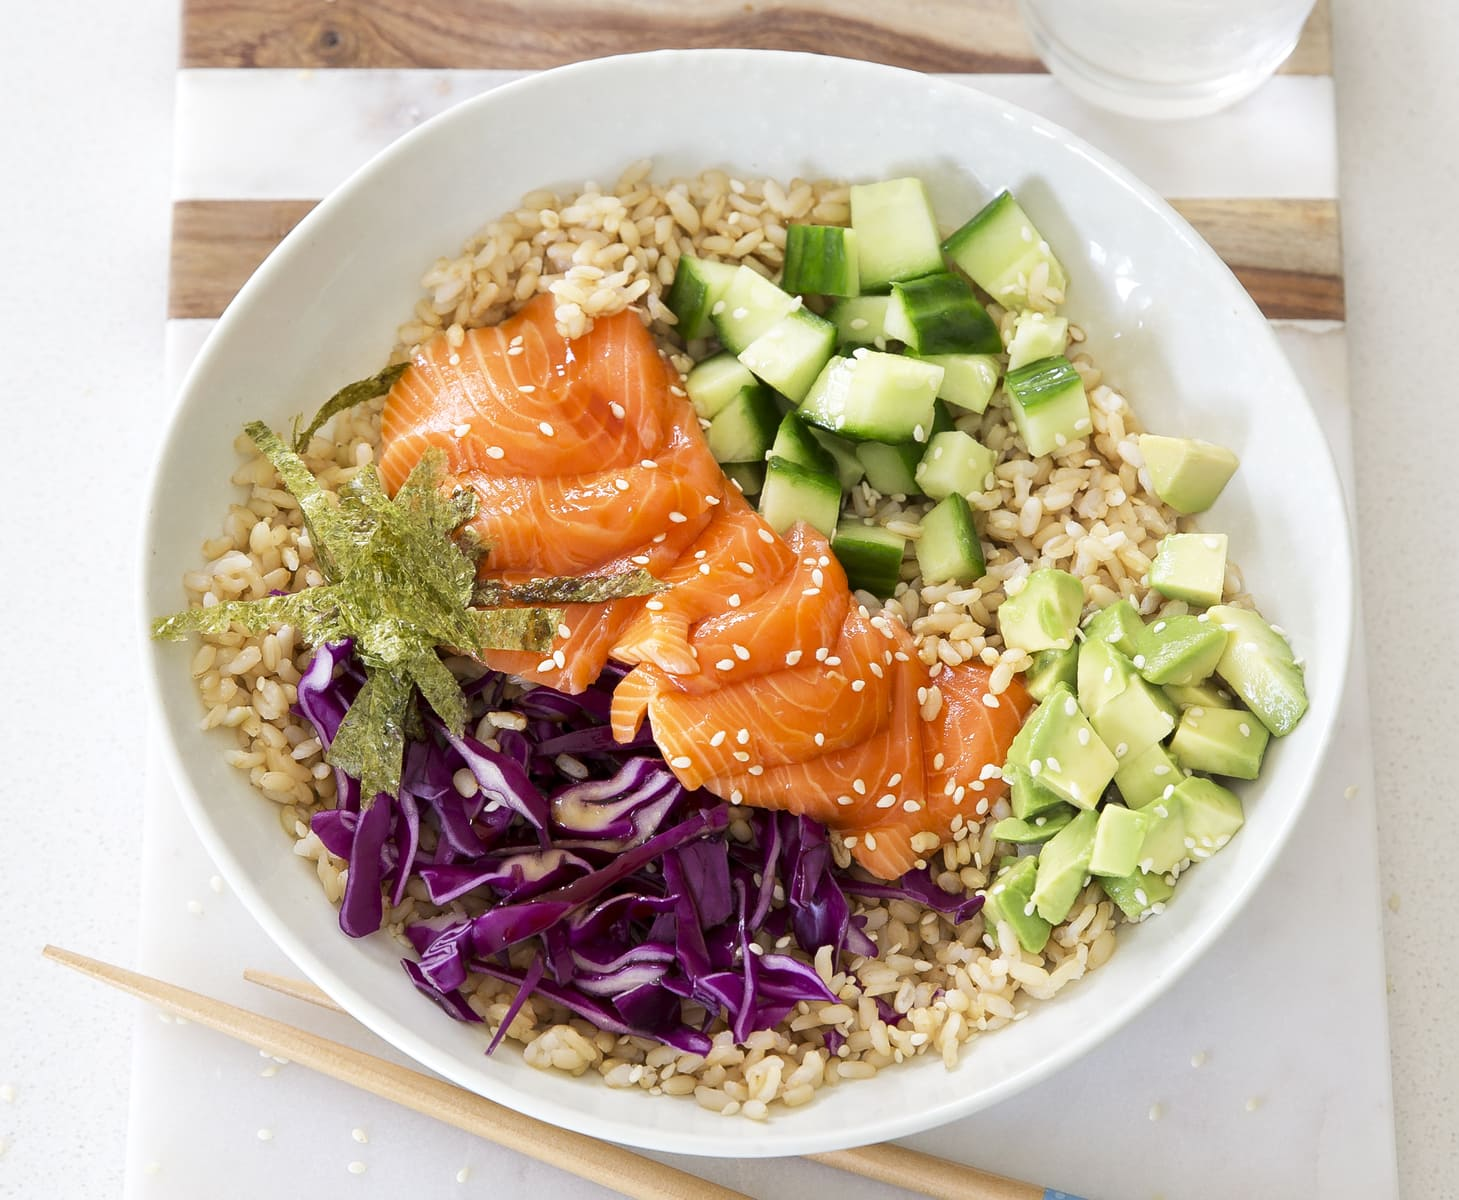 20 healthy work lunches youll love healthy food guide 20 healthy work lunches youll love forumfinder Image collections